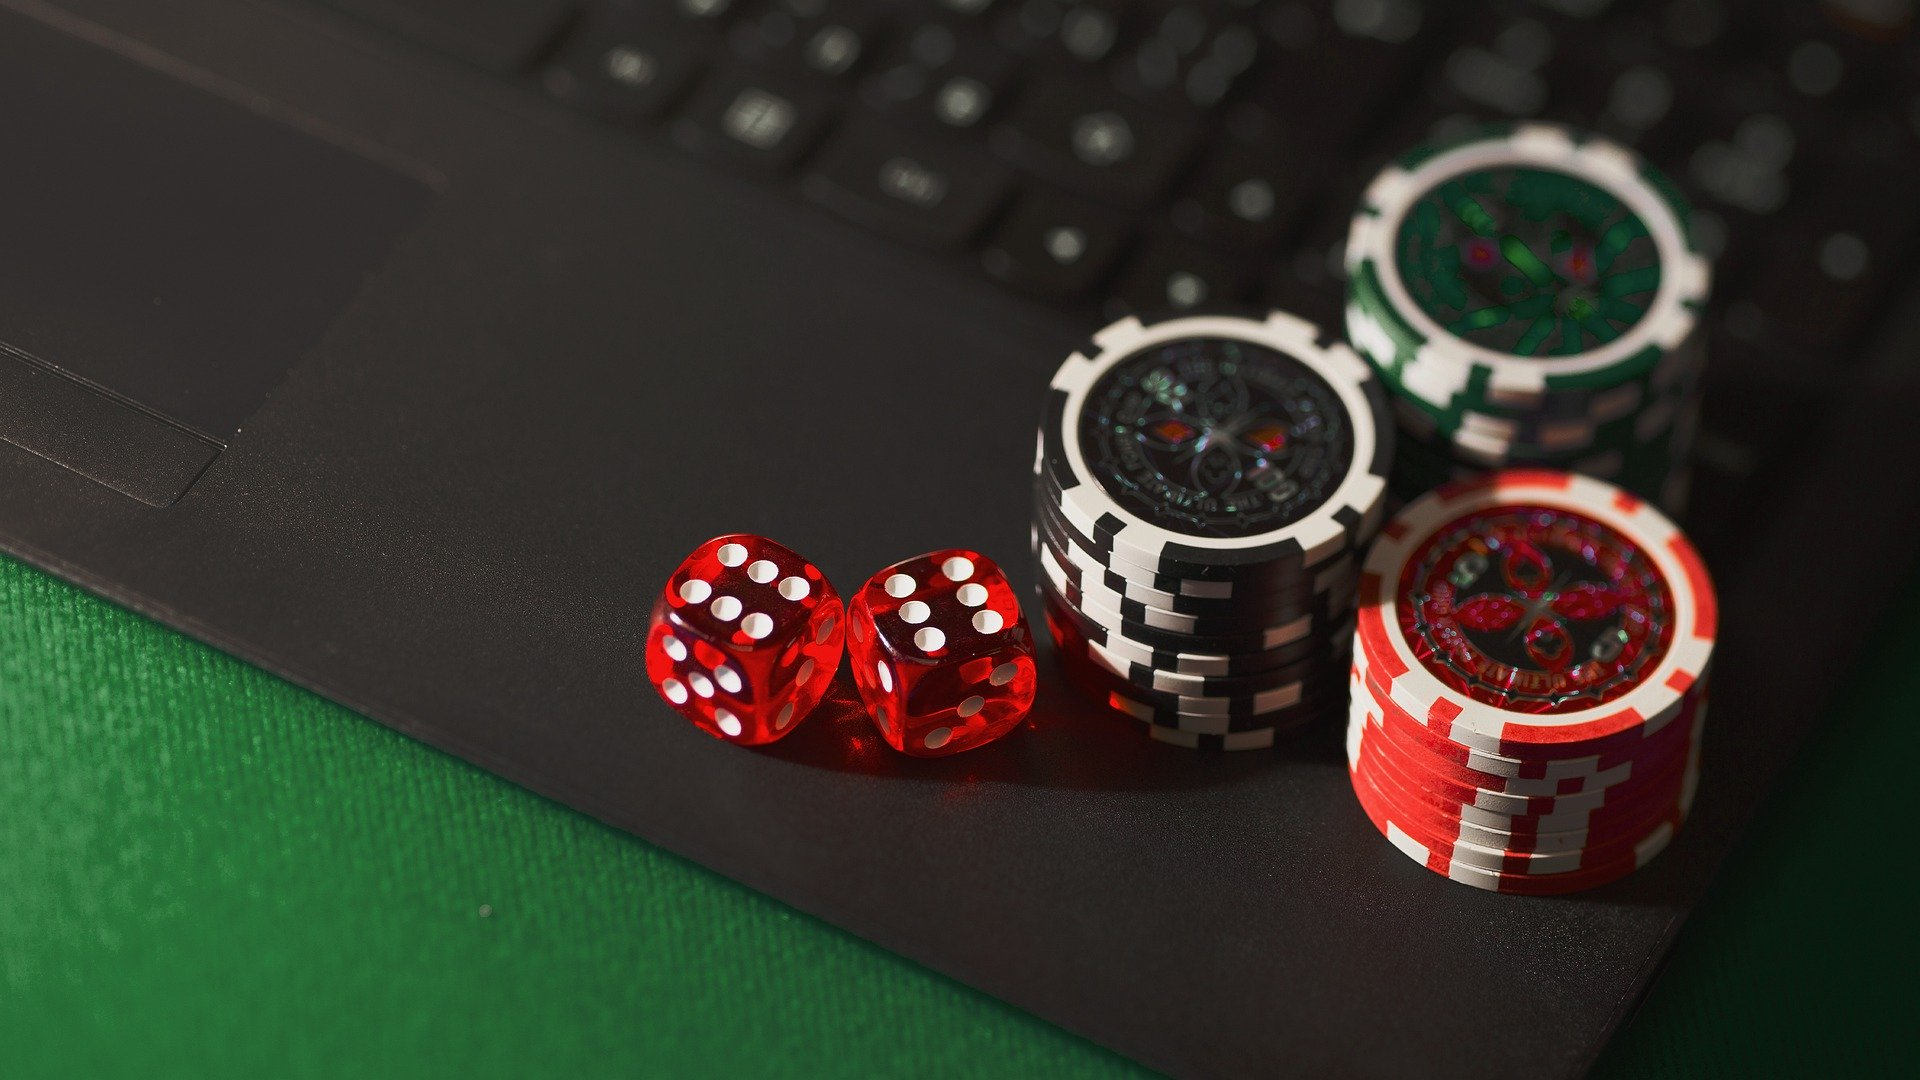 Choosing Online Casinos - How To Choose The Best Online Casino In New Zealand